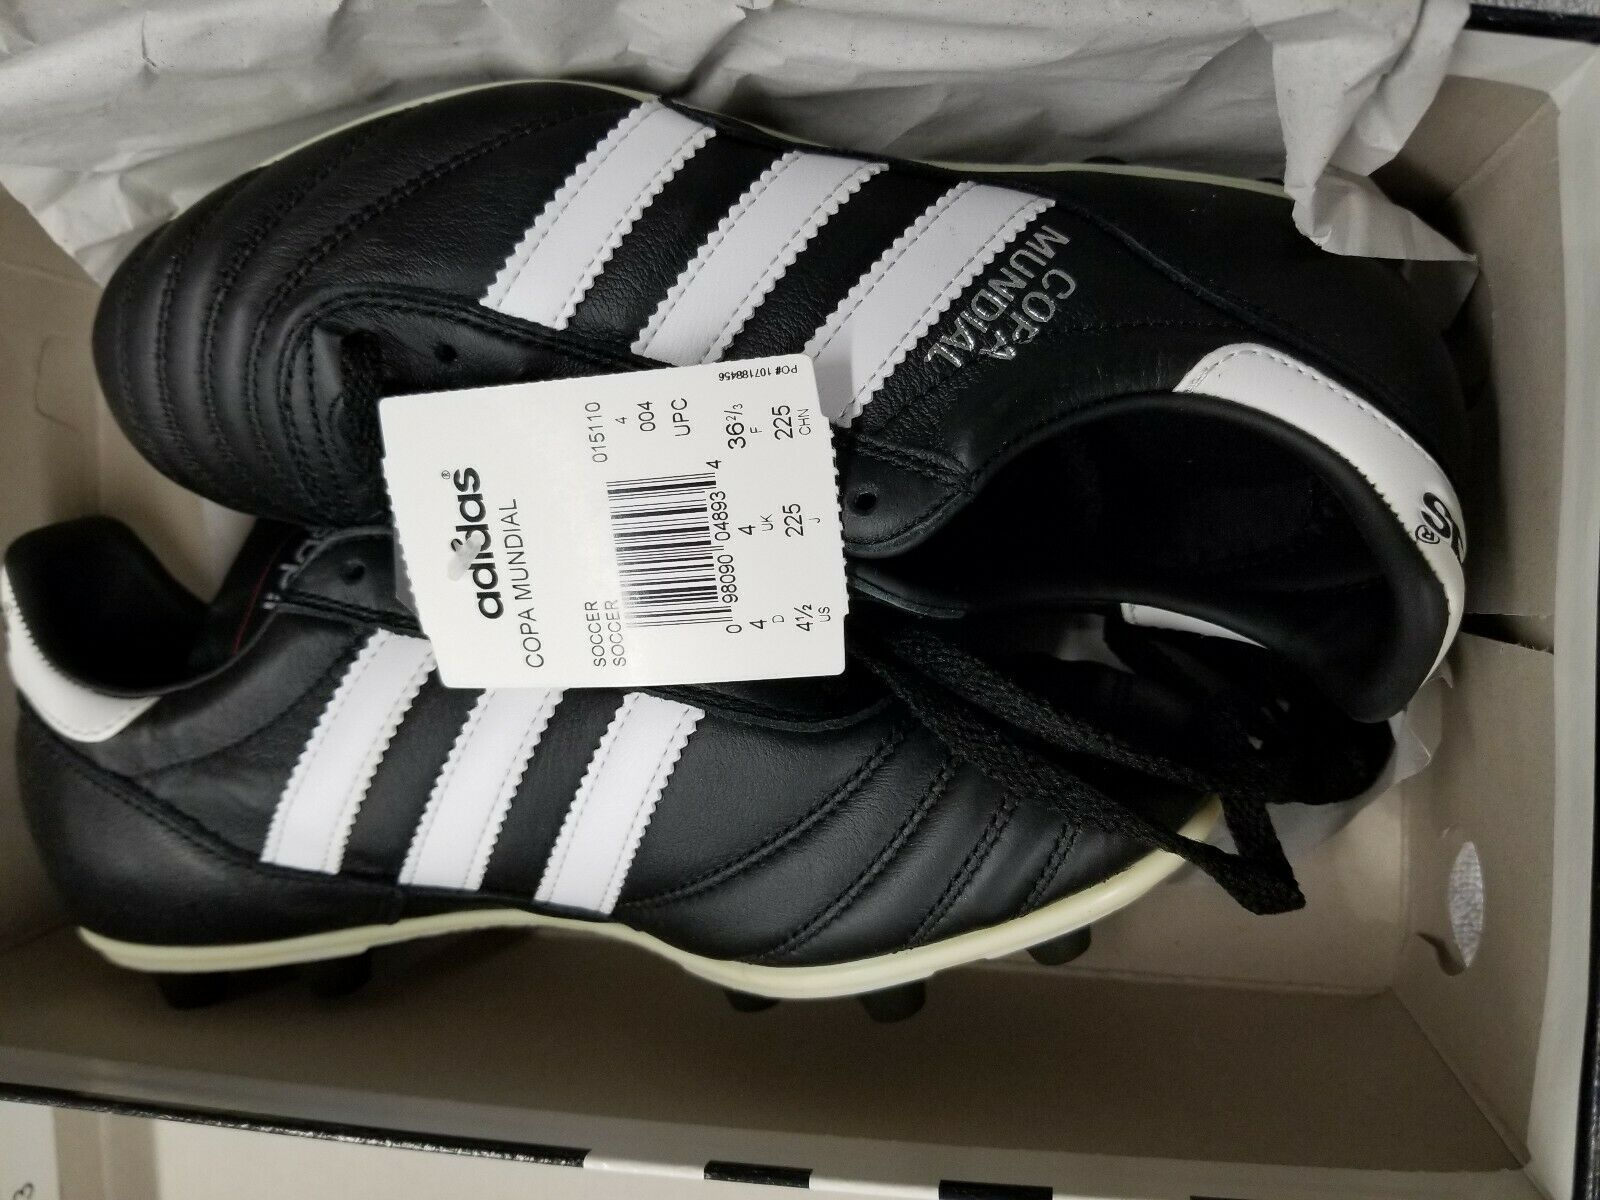 Adidas Copa Mundial Leather Soccer Cleats - Men's, SKU 015110 Size 4.5